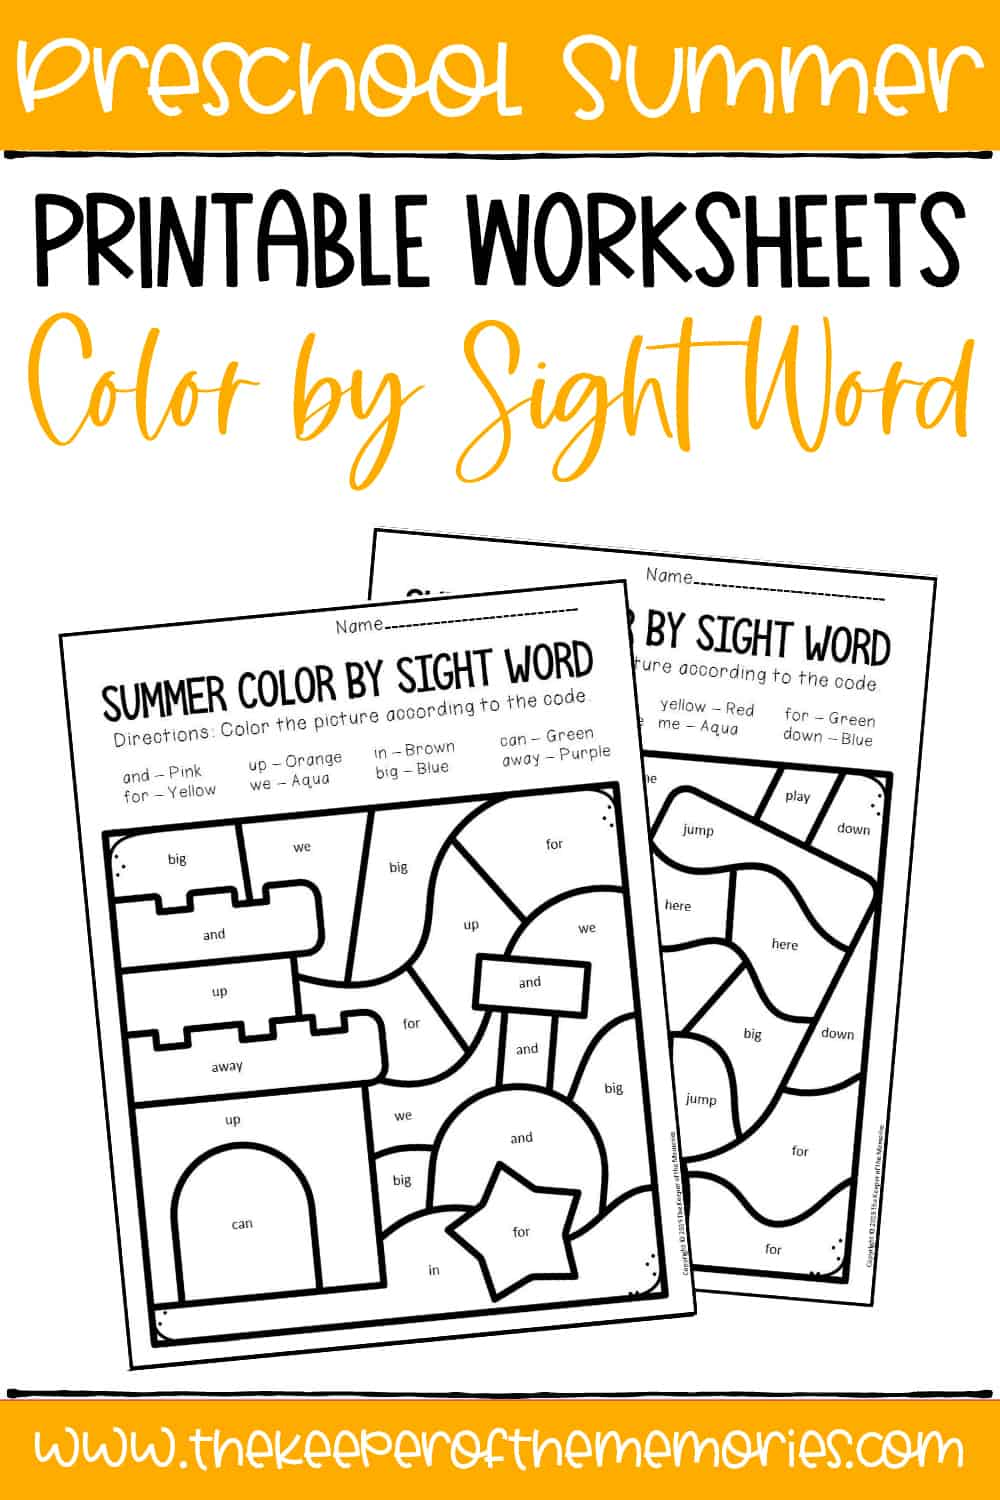 Color by Sight Word Summer Preschool Worksheets